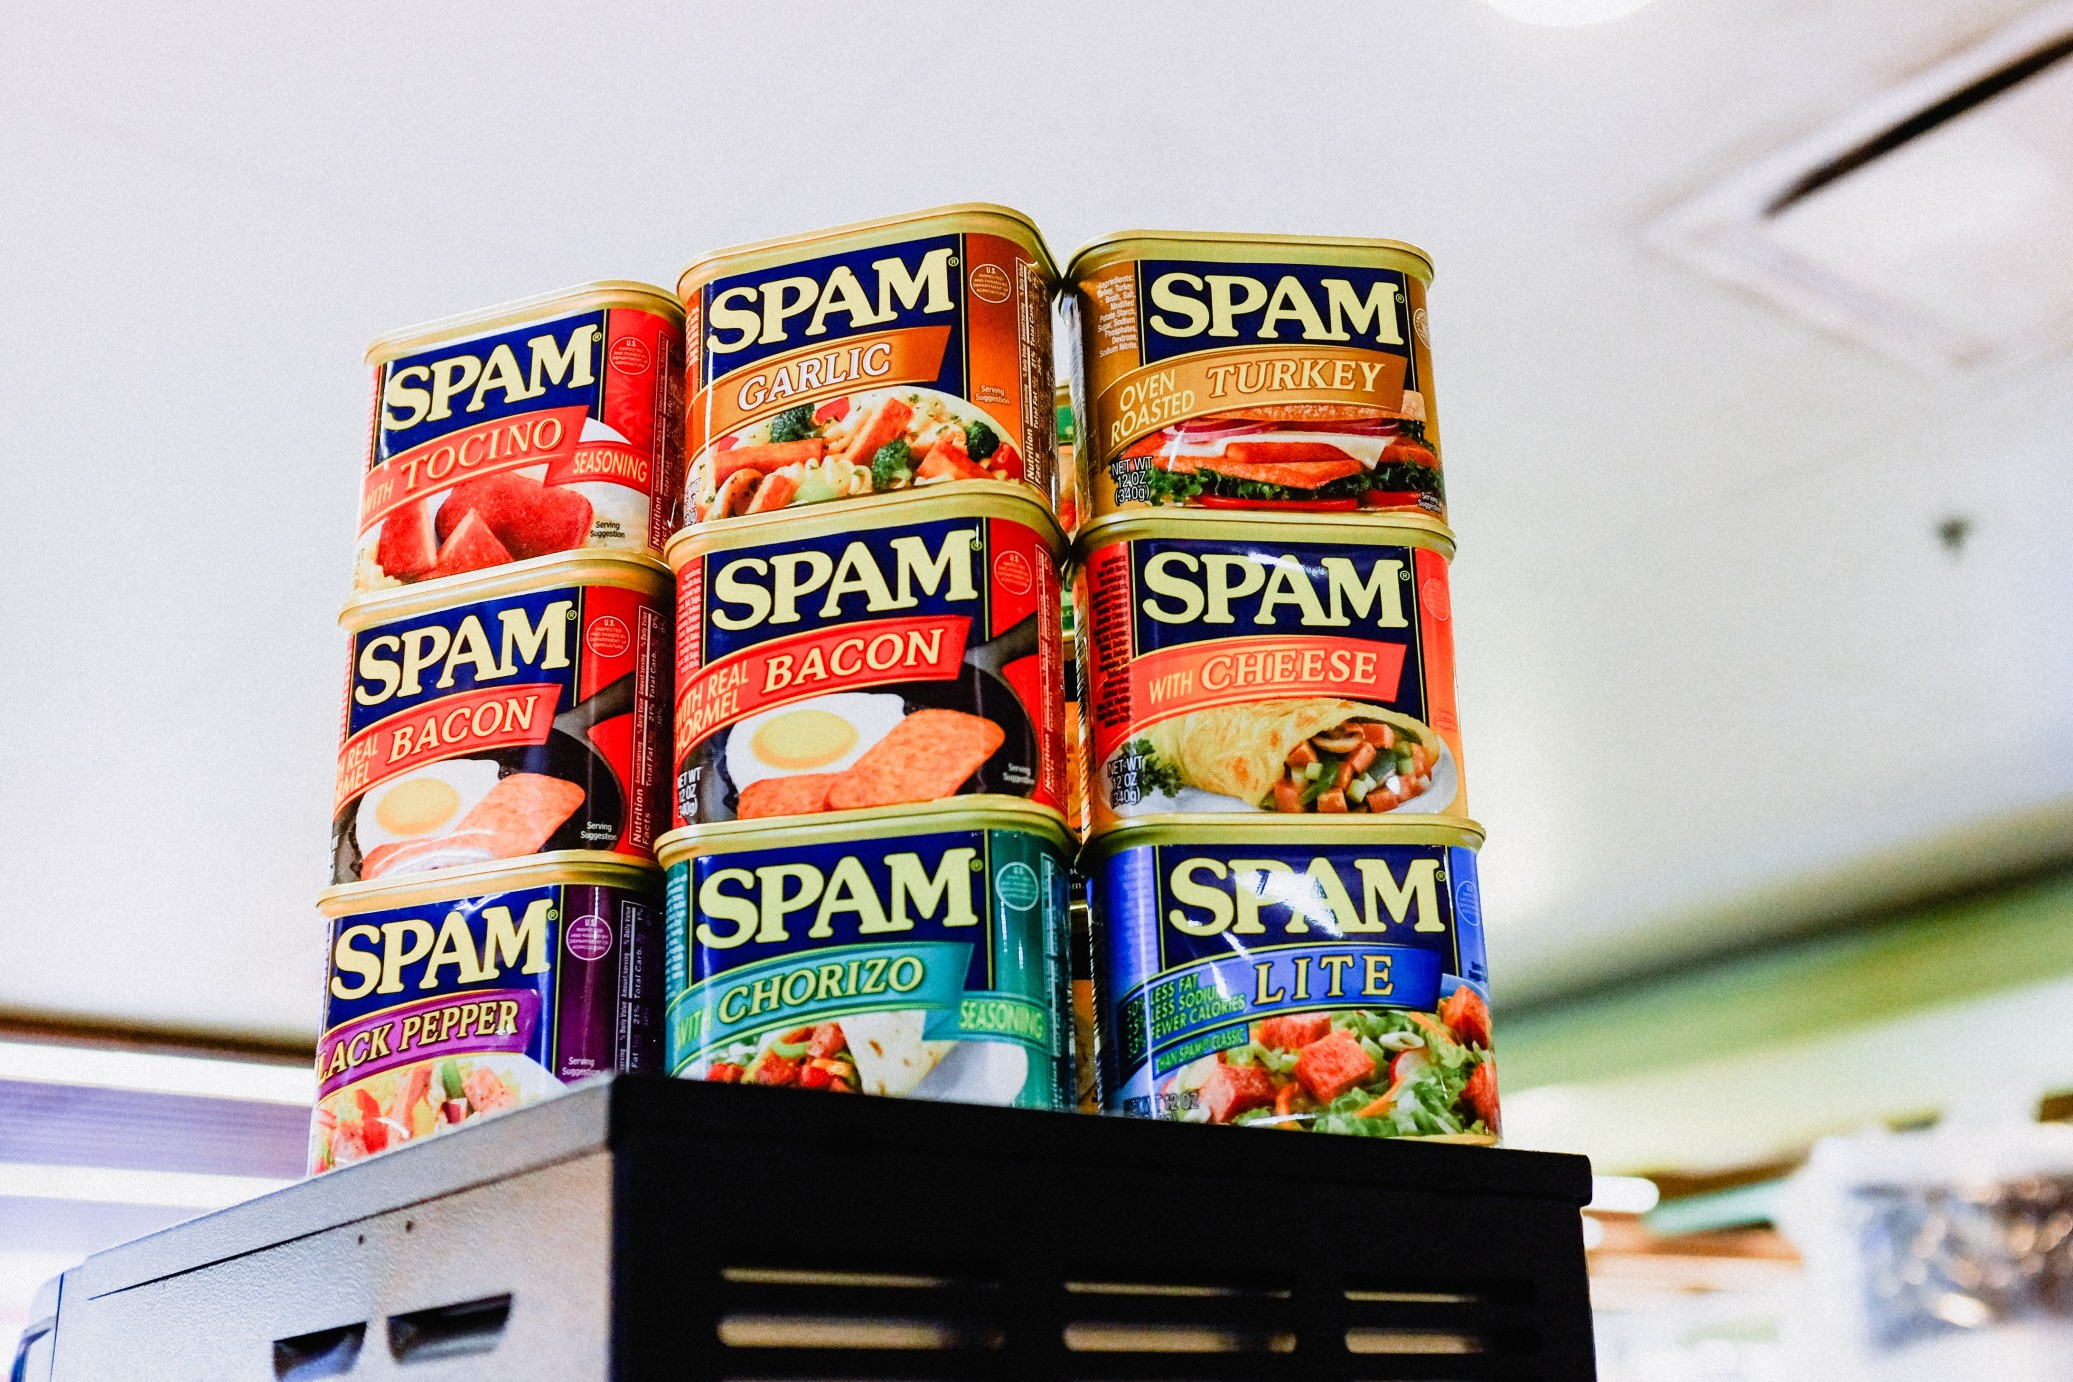 What Is Spam Made Of?